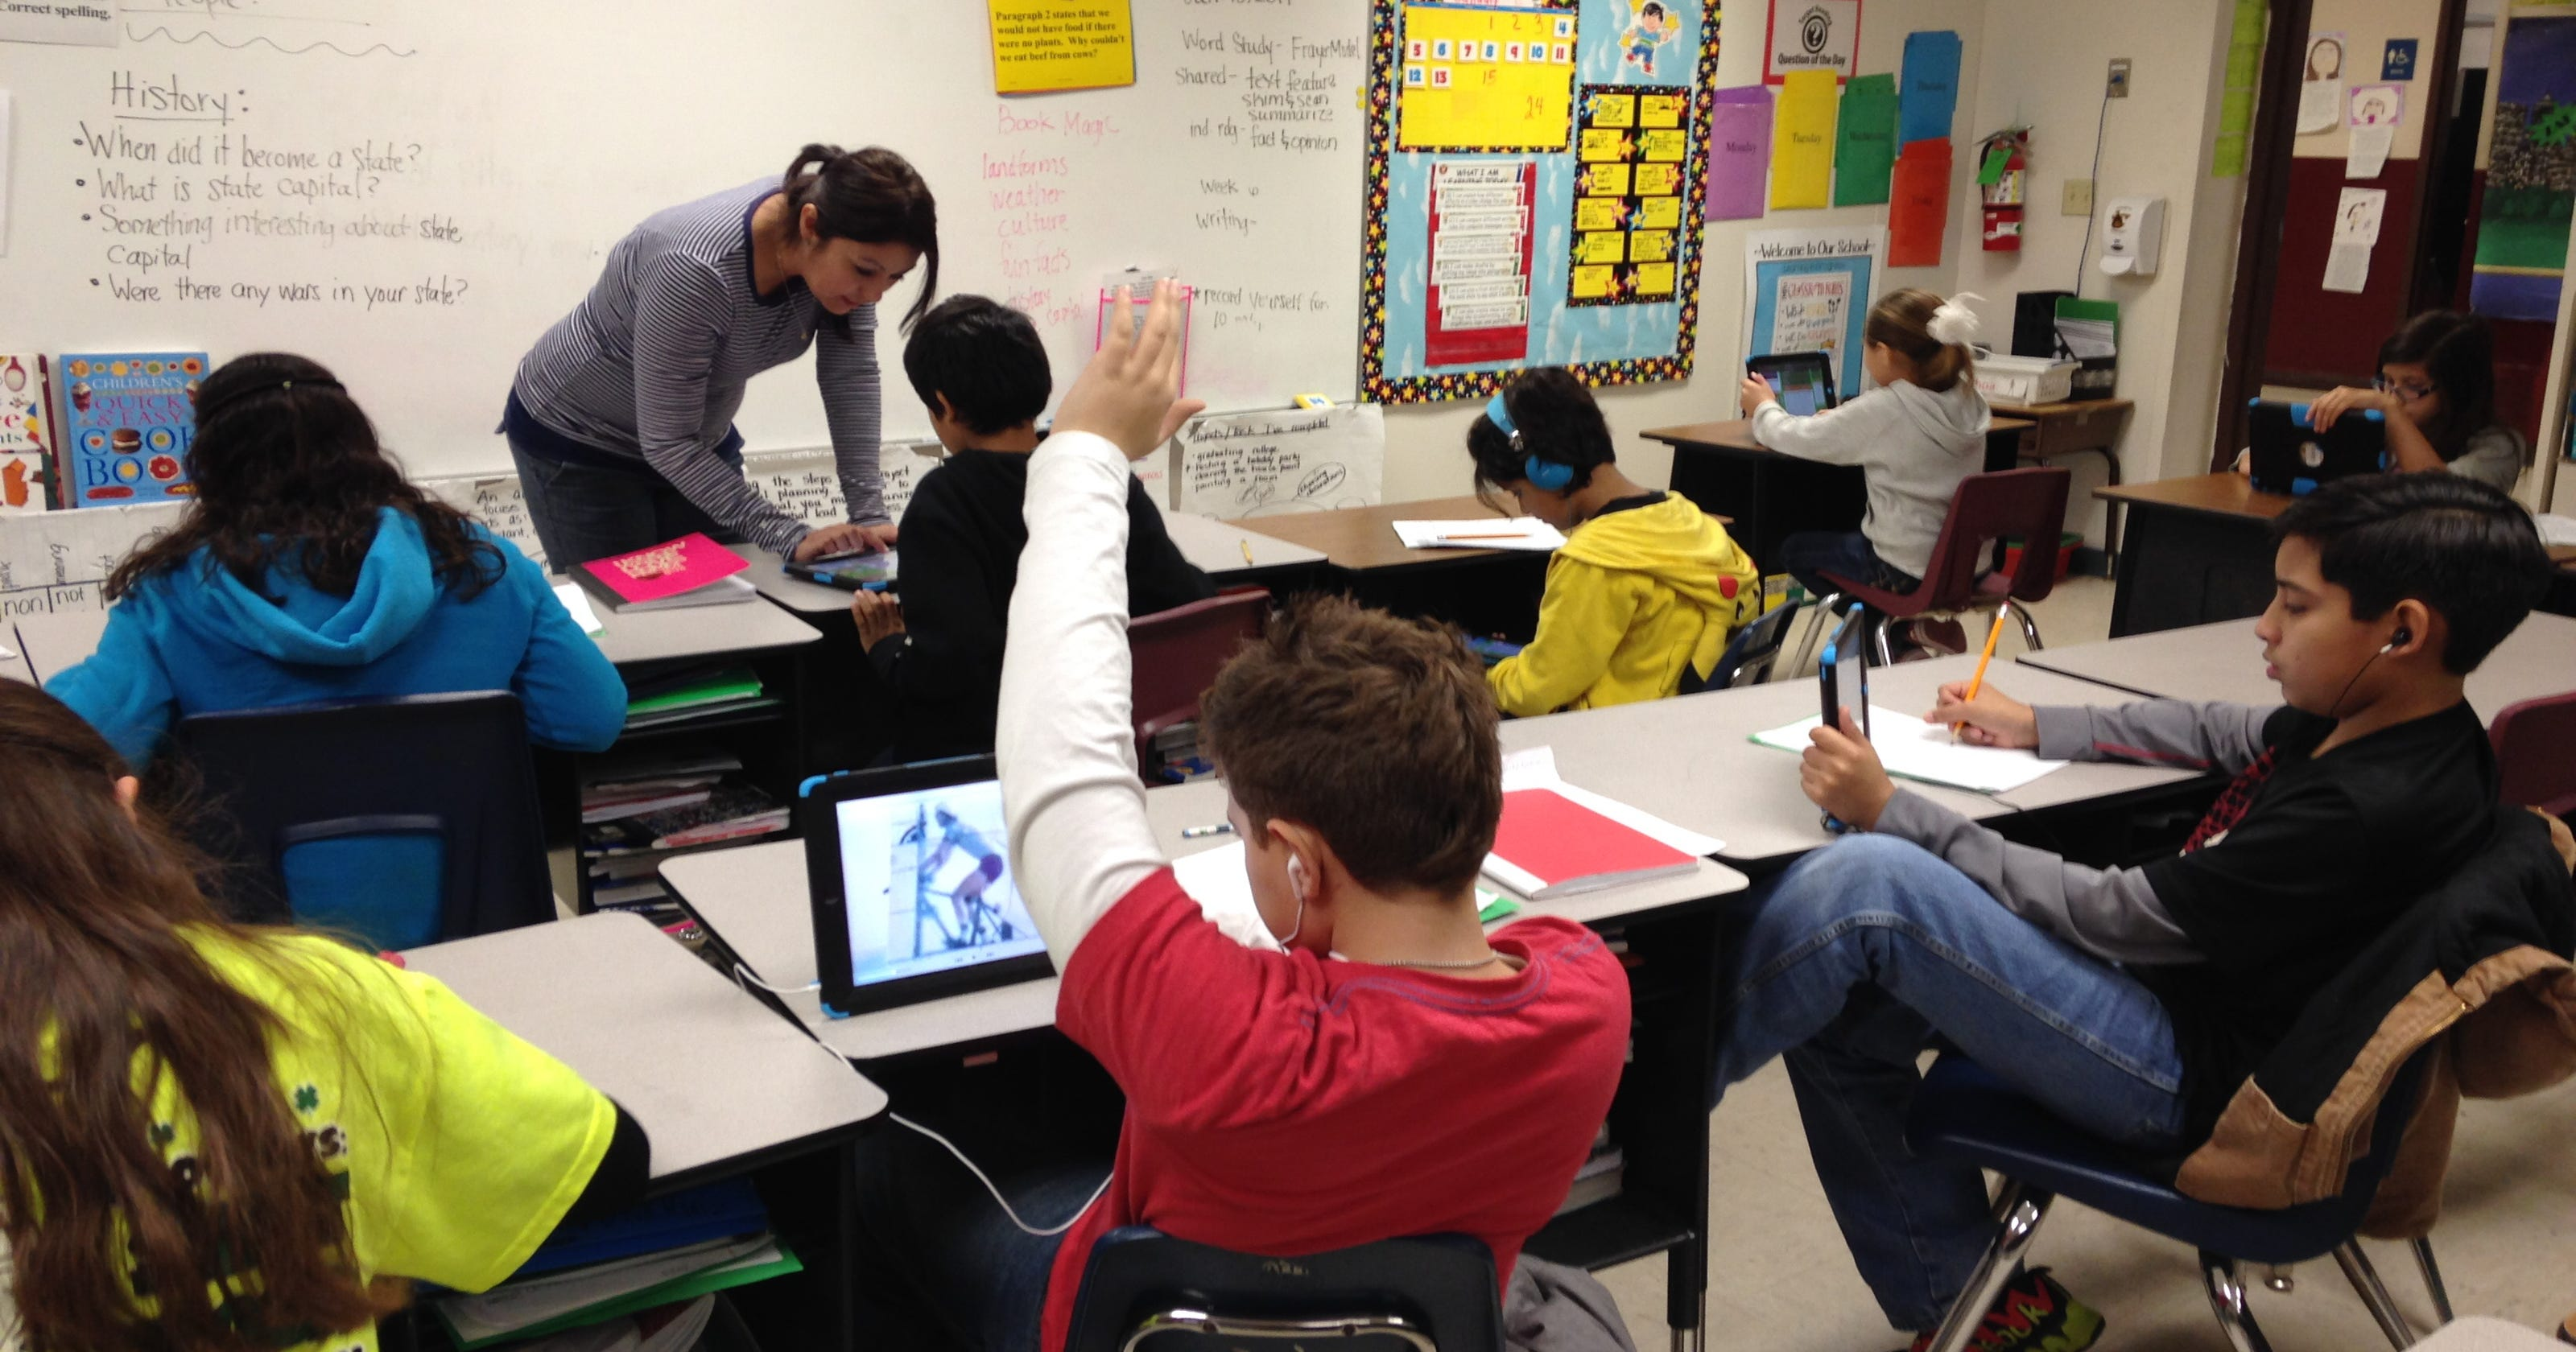 Oil boom brings cash and iPads to school district